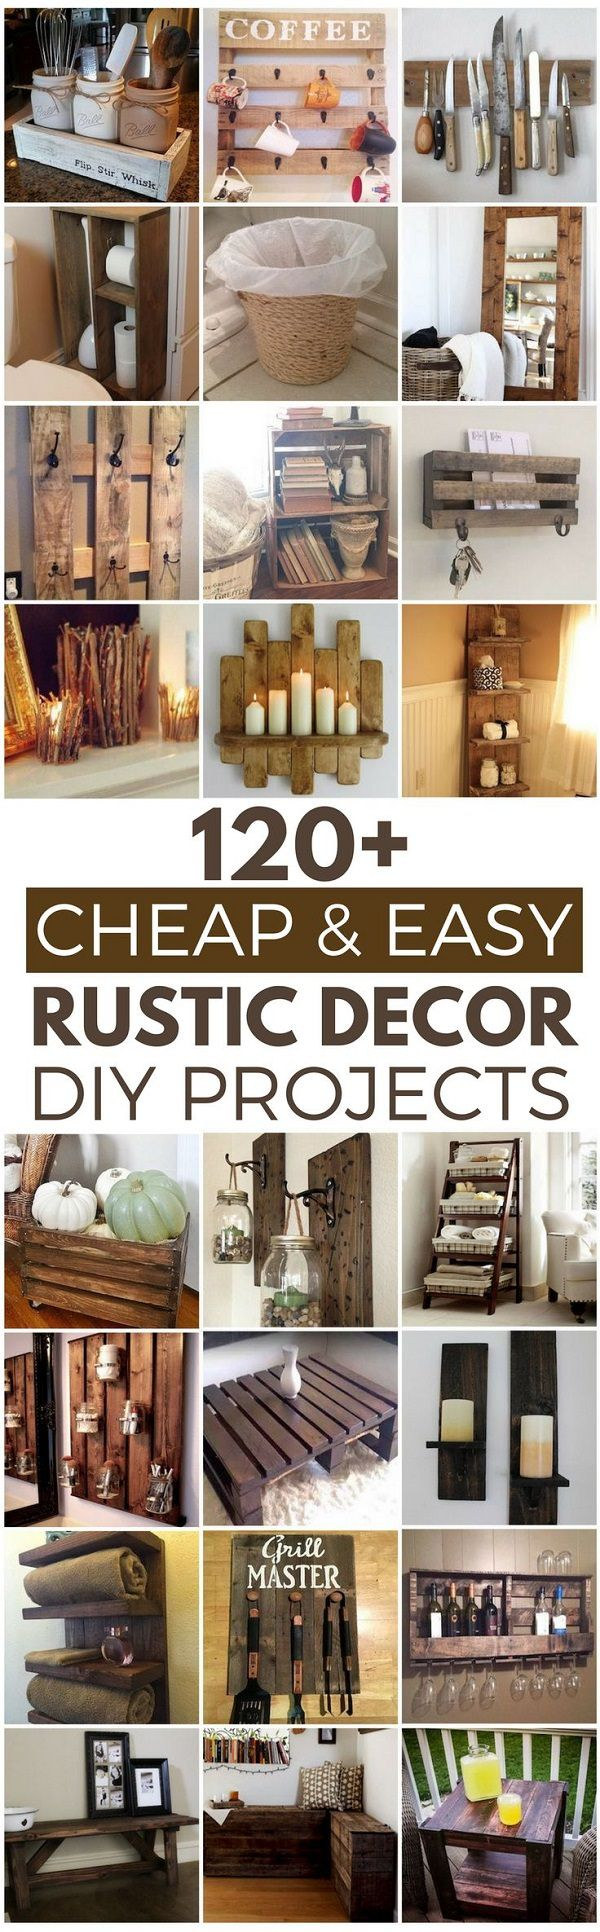 best 20 rustic home decorating ideas on pinterest - Home Rustic Decor